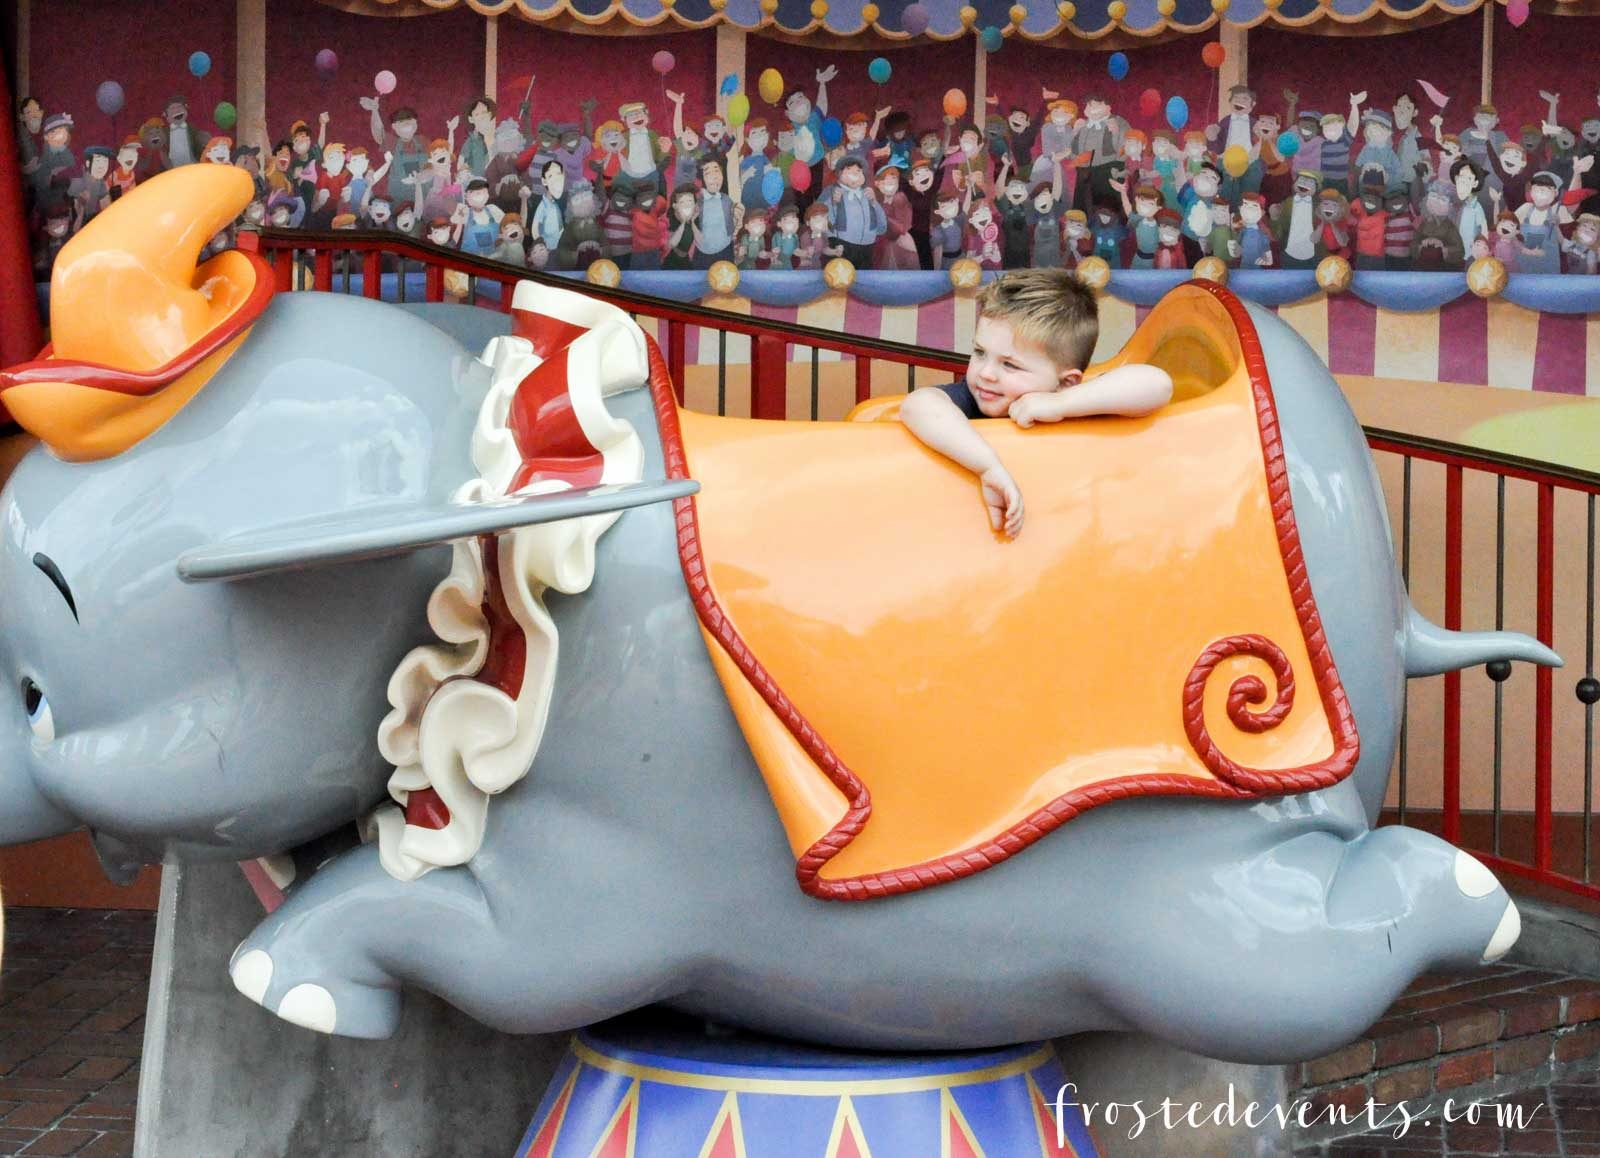 Disney World Resorts Disney Theme Parks Magic Kingdom Planning Disney Vacation Family Travel Guide via Misty Nelson of @frostedevents and funfamilytravelblog